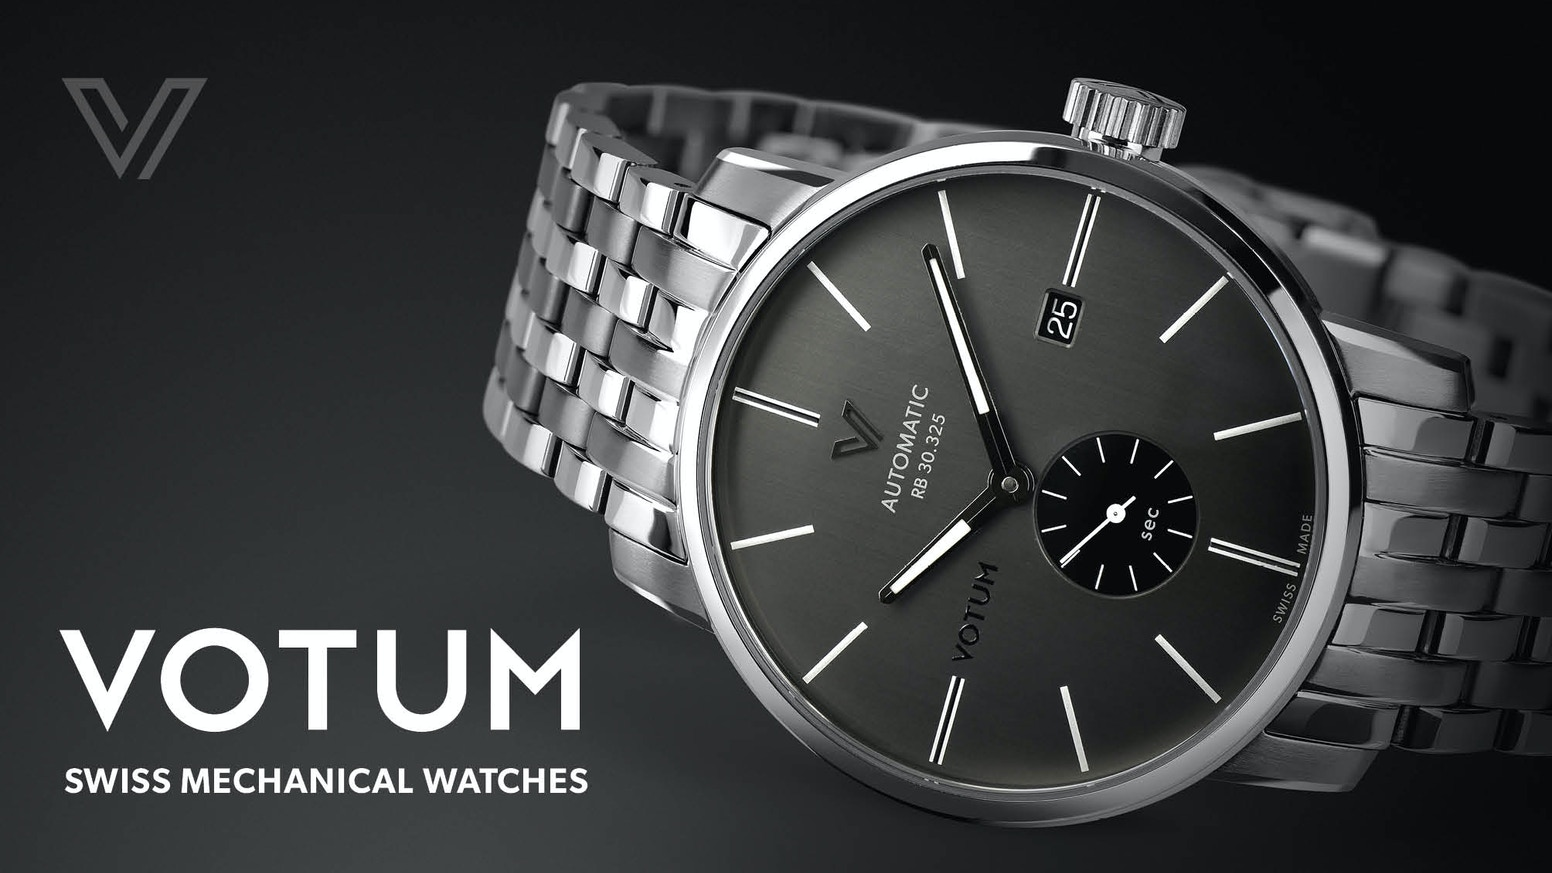 The Revival of Votum Mechanical Watches. Swiss Made since 1962.